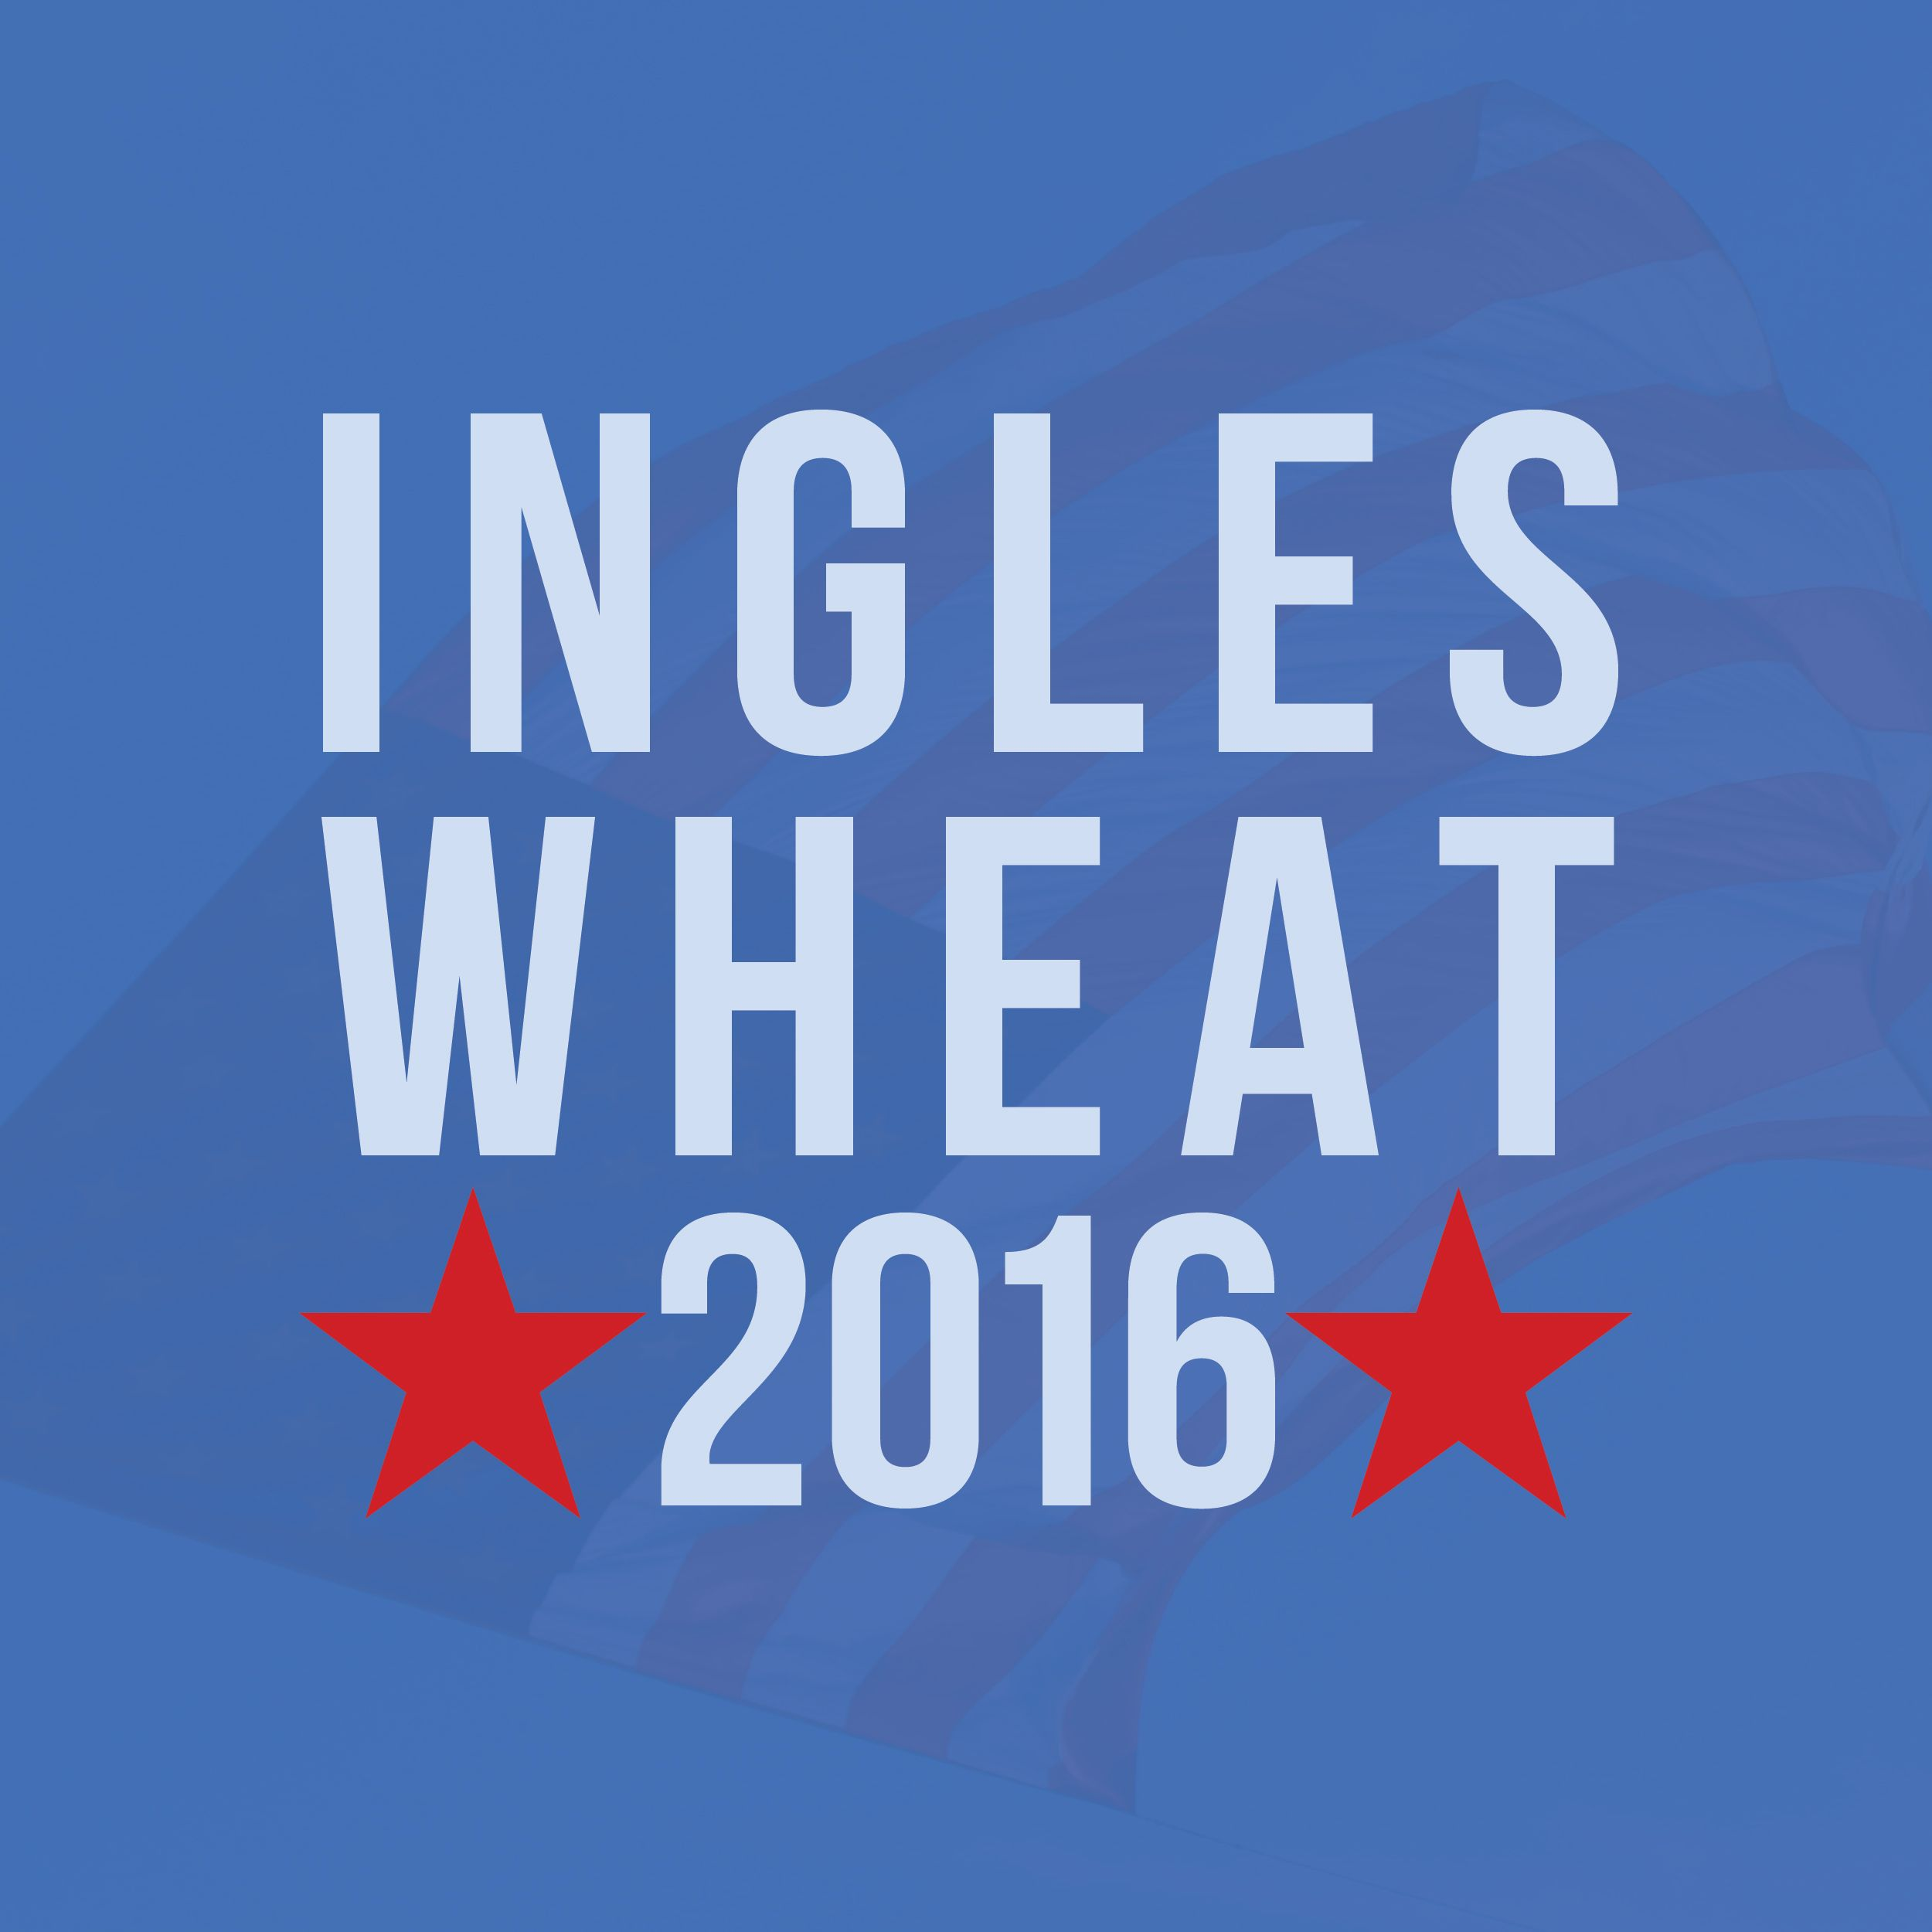 Ingles Wheat 2016